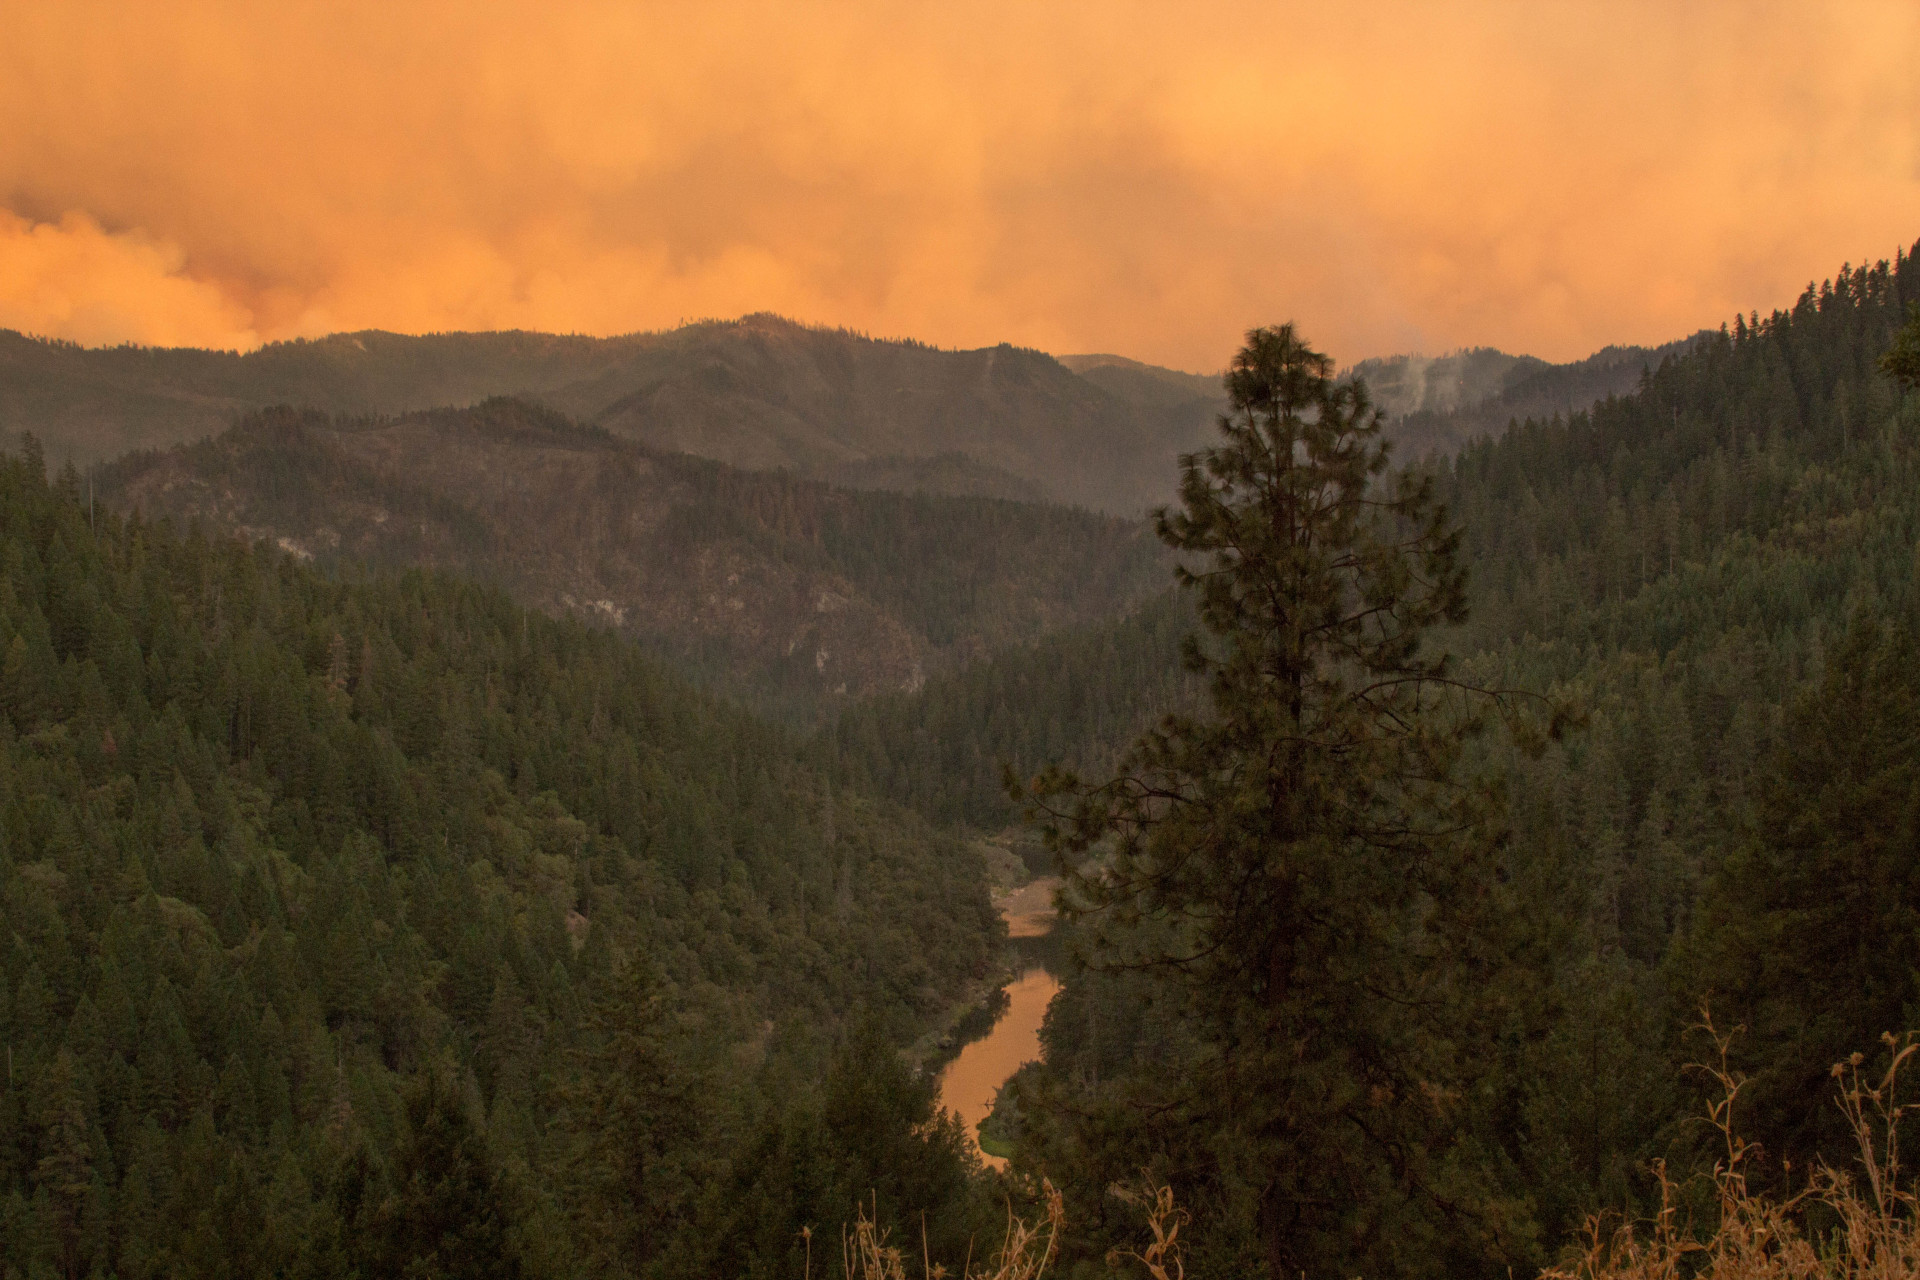 """The Frying Pan Fire, burning in the mountains south of the Klamath River in Siskiyou County, as seen from Highway 96 east of the town of Happy Camp in late August 2014. The fire was one of a series sparked by lightning that federal fire managers have dubbed the Happy Camp Complex. The U.S. Forest Service announced Tuesday that a handful of """"holdover"""" hotspots had reignited due to extreme heat and drought conditions."""